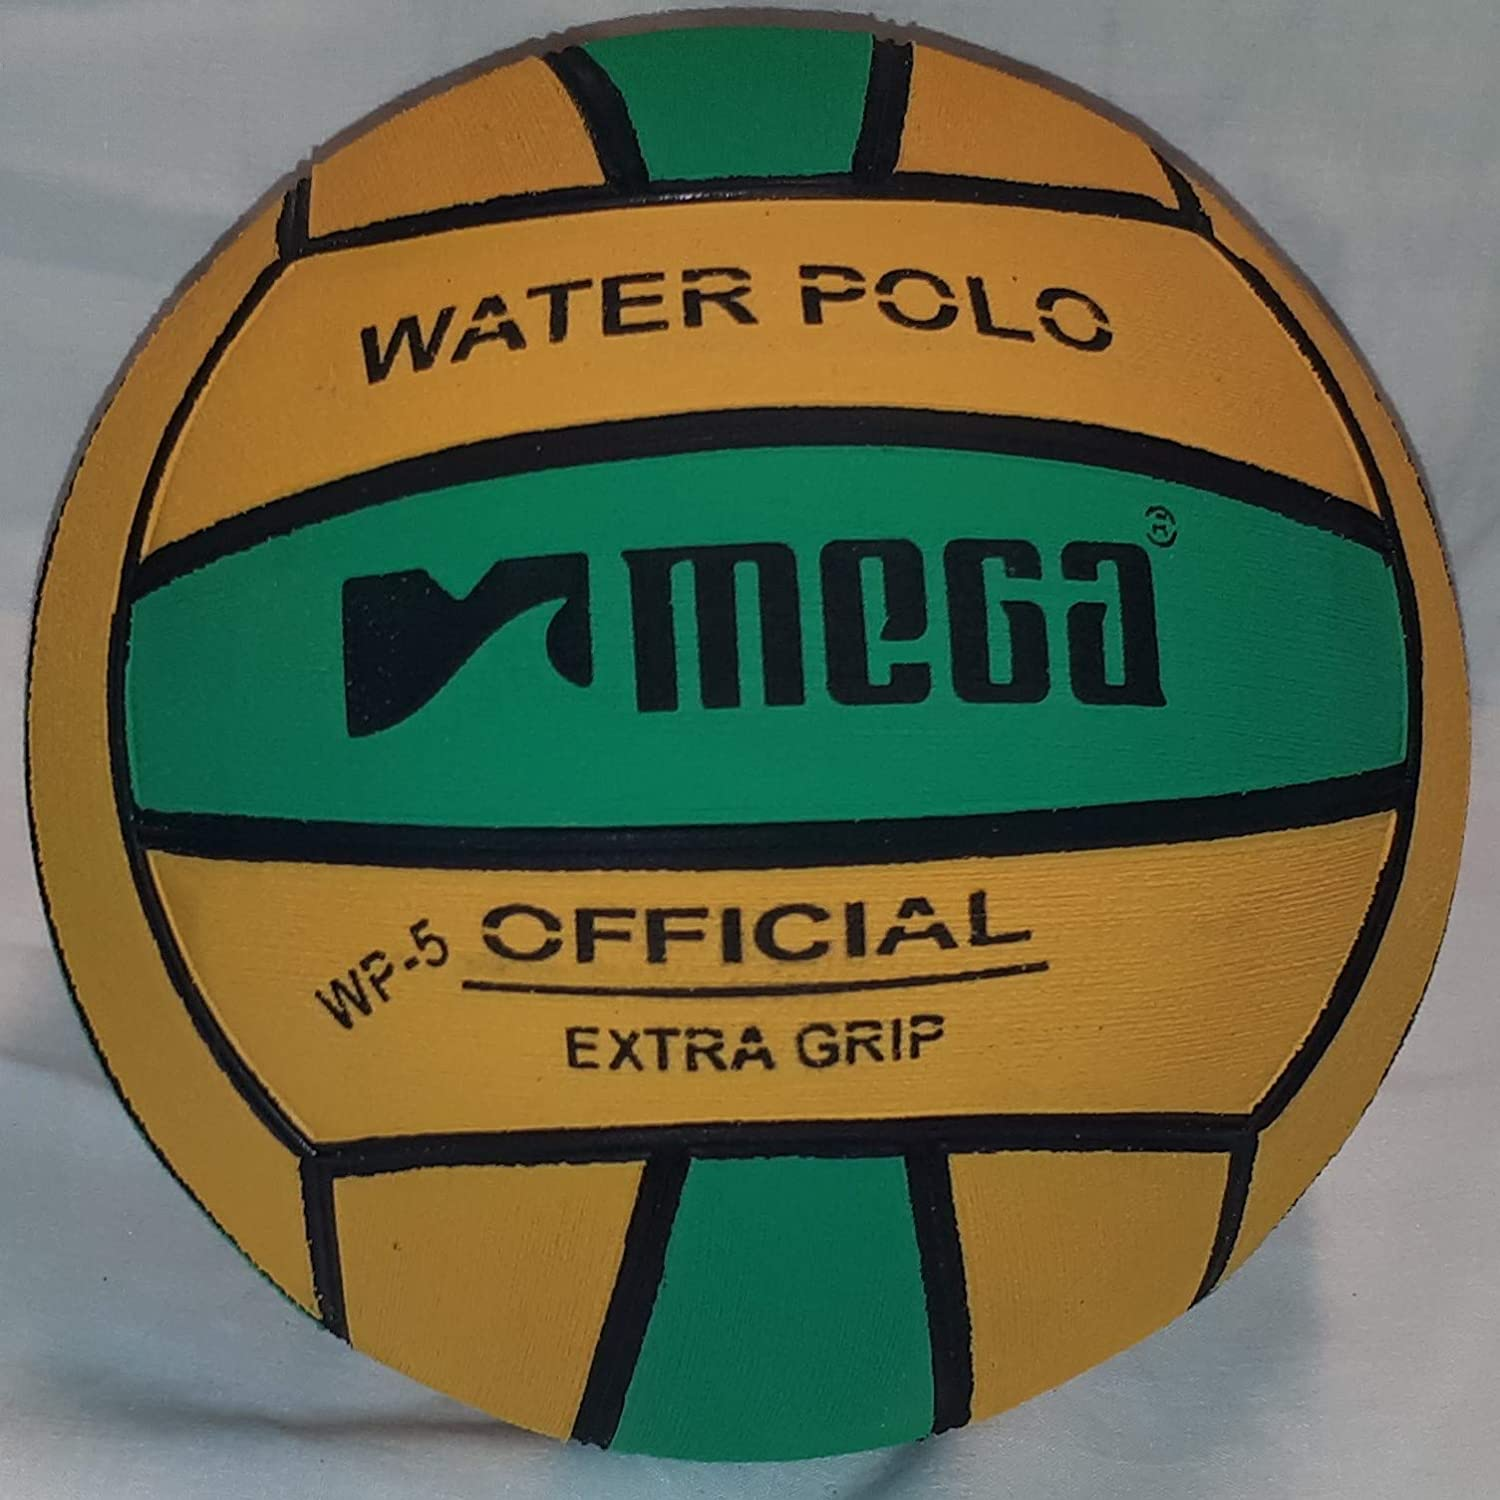 Mega Water Polo Ball Verde-Amarillo. Tamaño 5: Amazon.es: Deportes ...